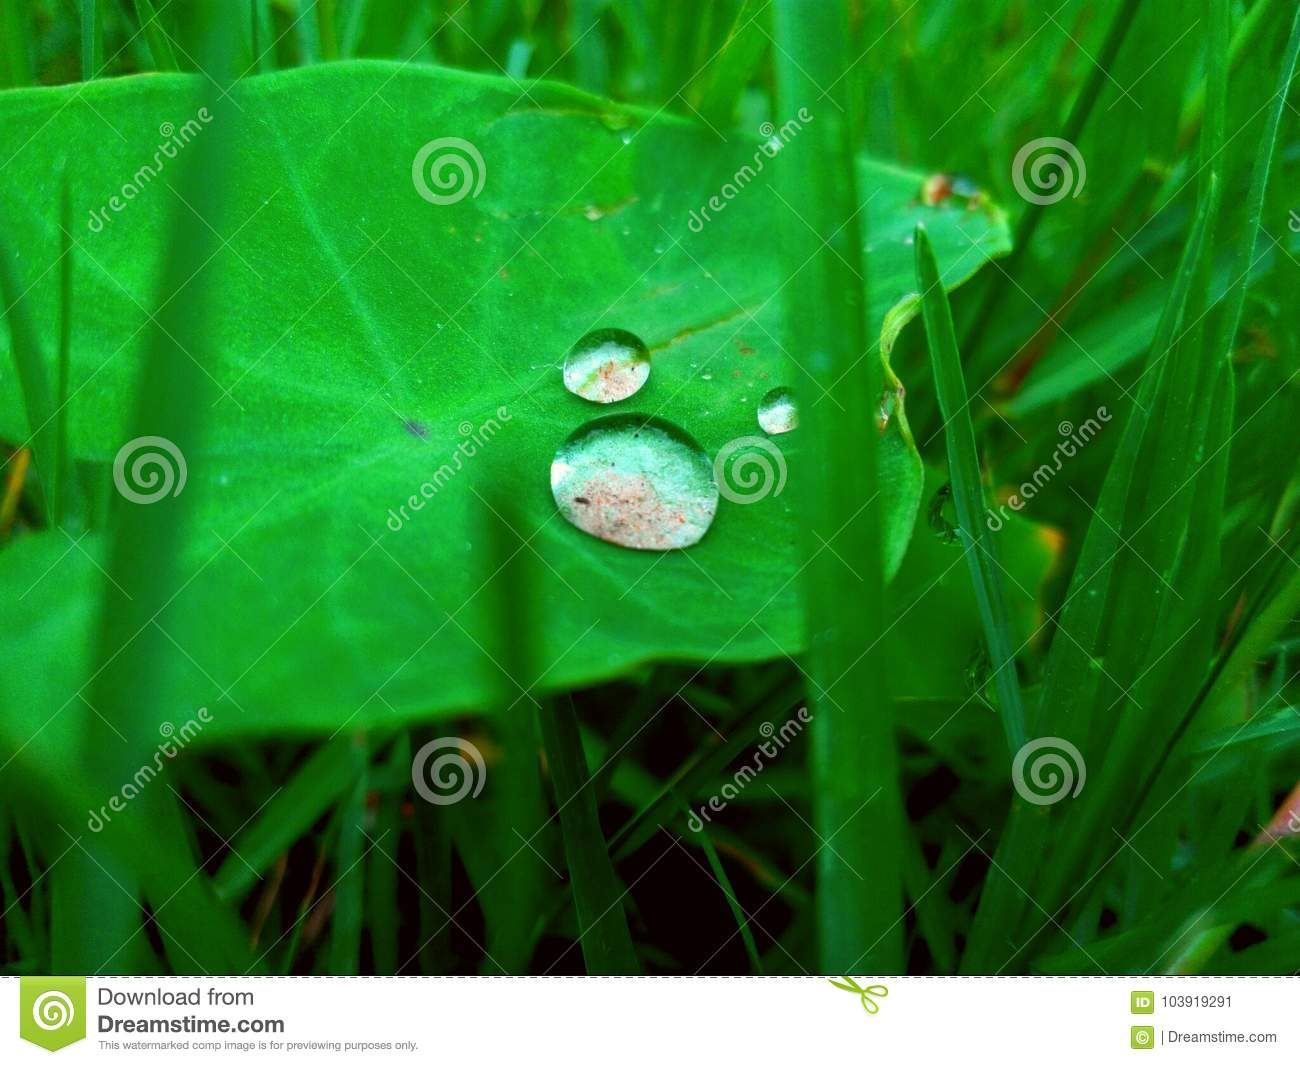 Water drops on leaves stock image  Image of drops, leaves - 103919291